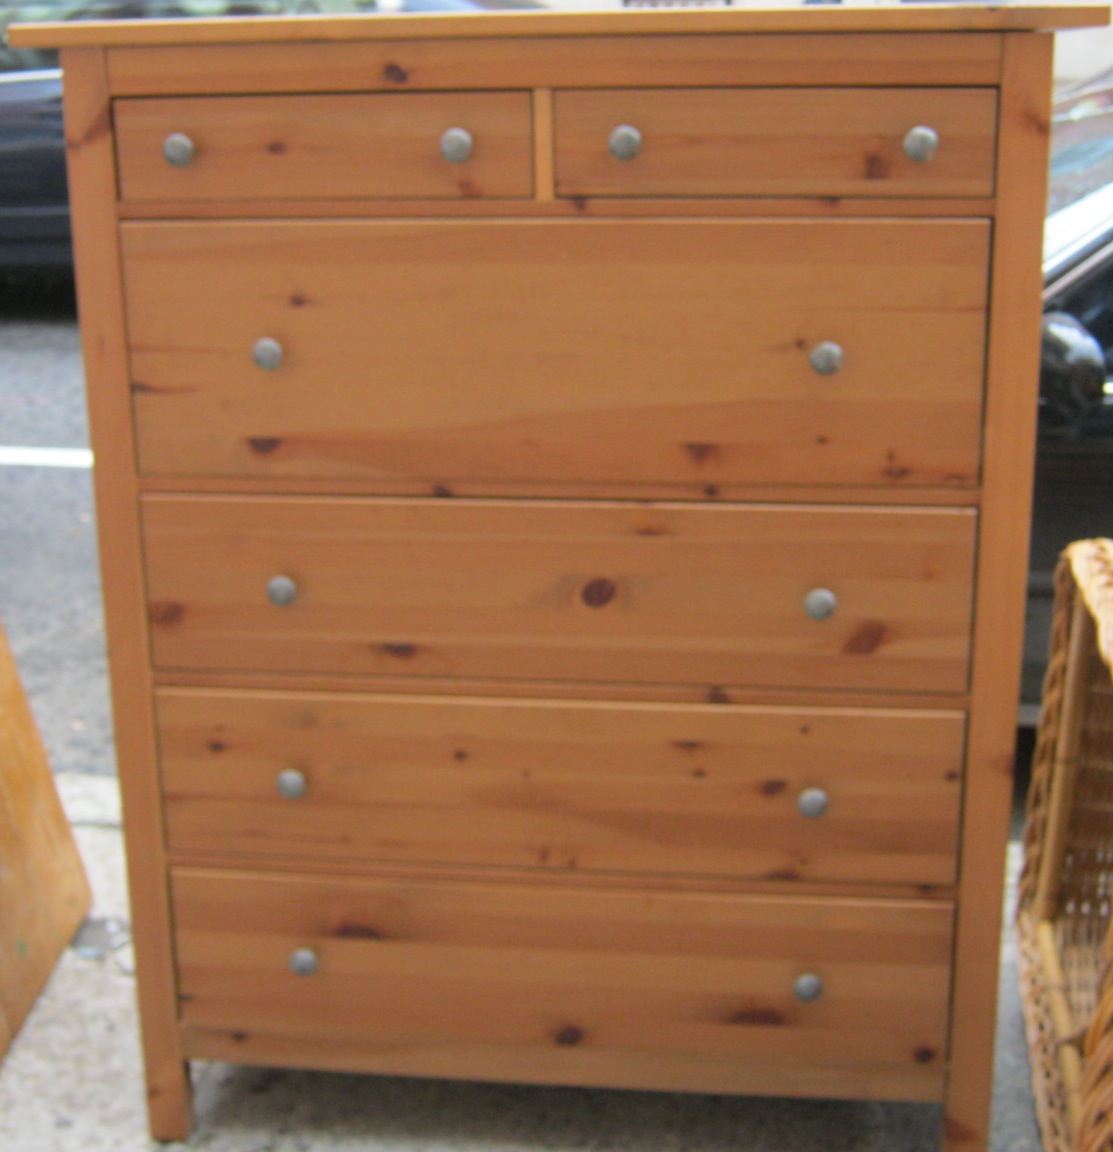 #915D3A Uhuru Furniture & Collectibles: Pine Hemnes Chest Of Drawers SOLD with 1113x1152 px of Best Hemnes Chest Of Drawers 11521113 image @ avoidforclosure.info